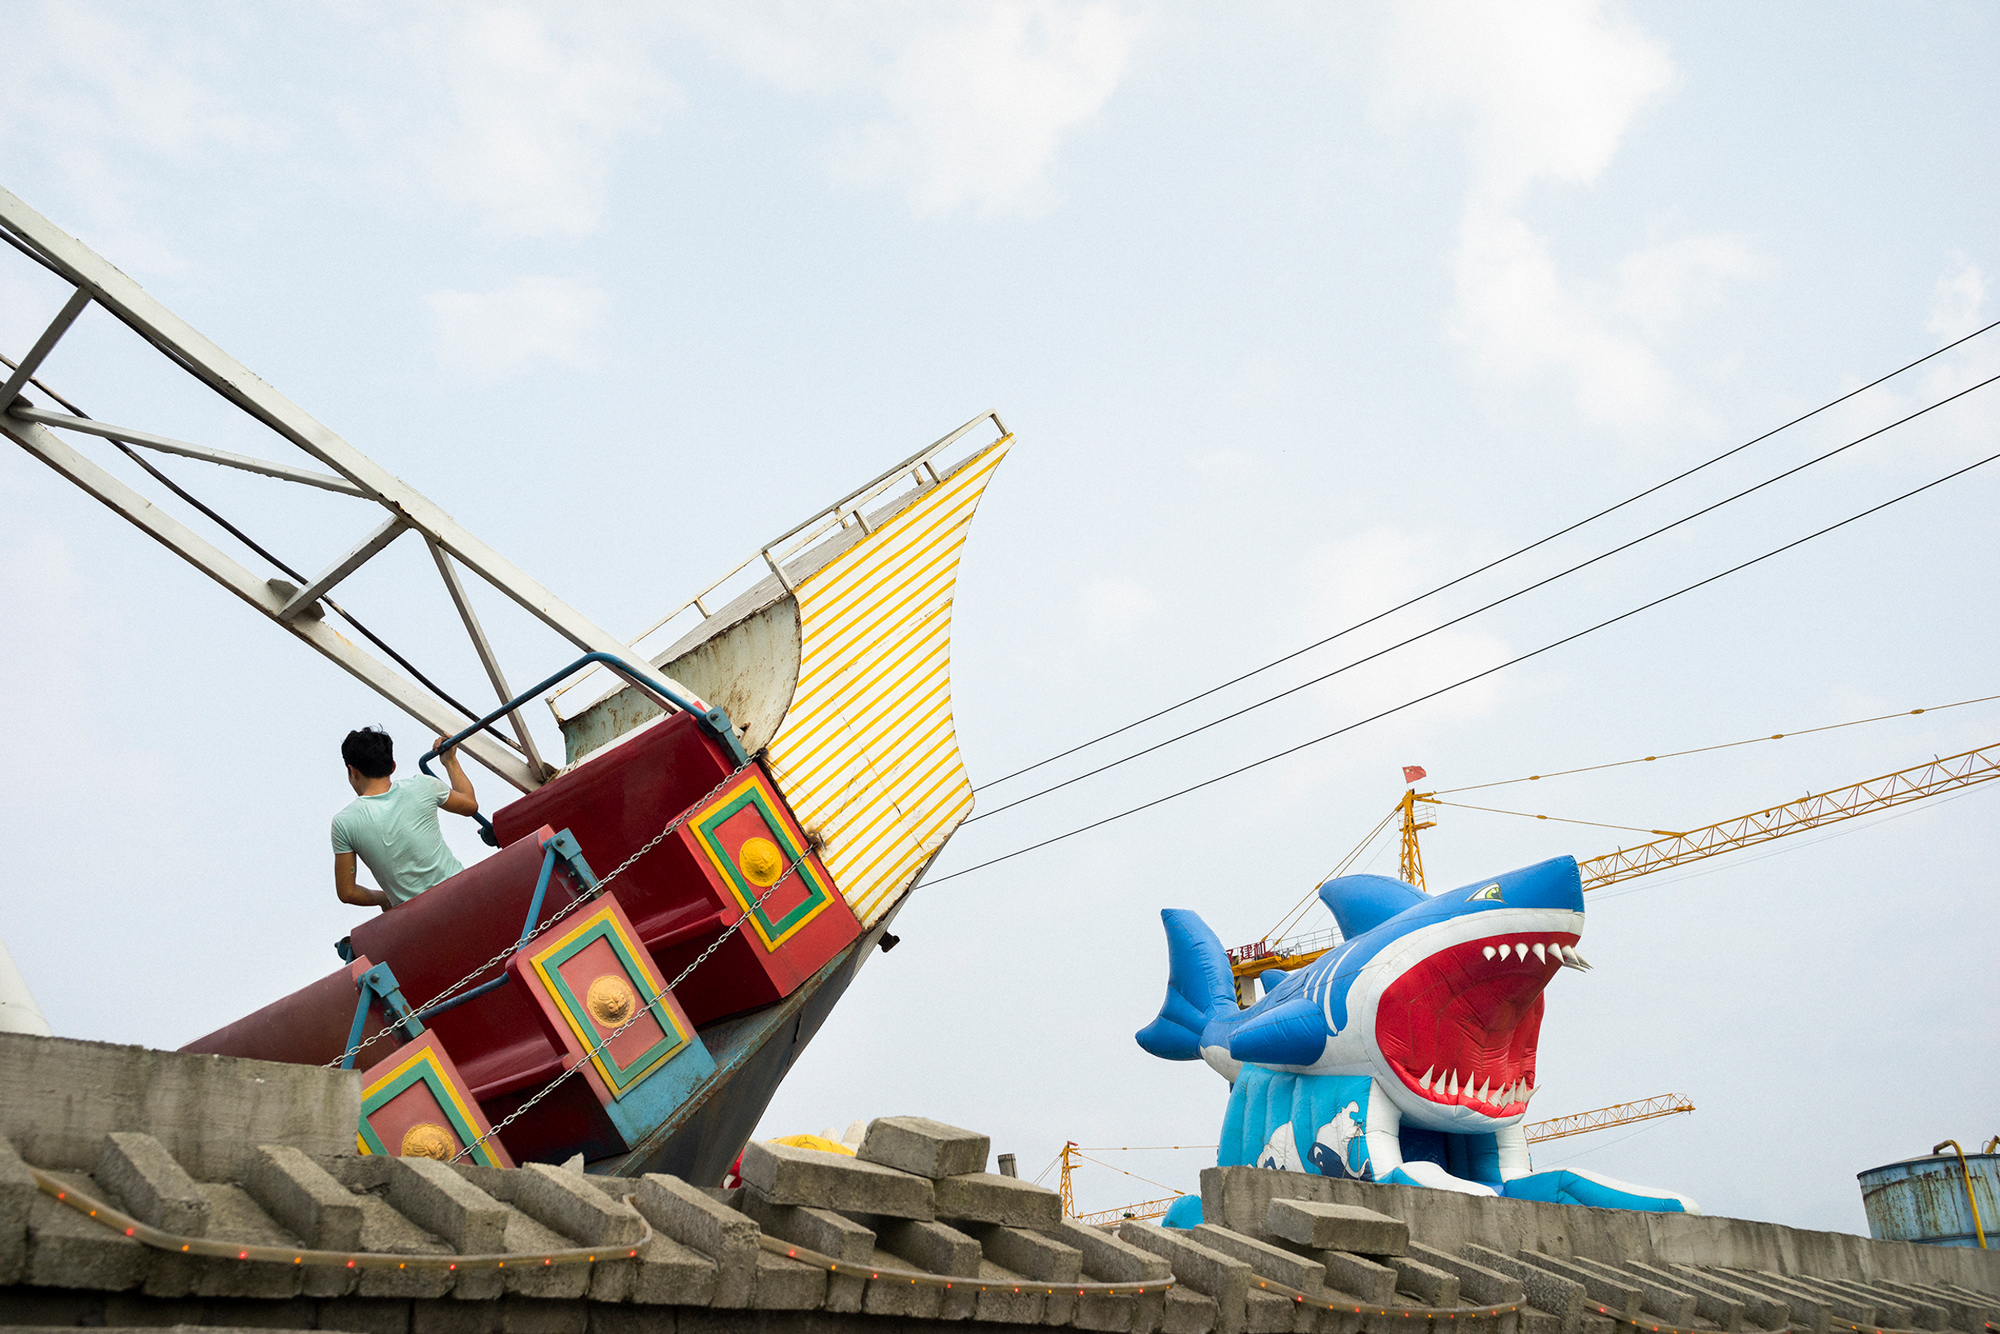 A man enjoys a ship-themed ride at a small amusement park on the former site of a farm in Feiyun, September 8, 2014. A residential complex is under construction beside the park.